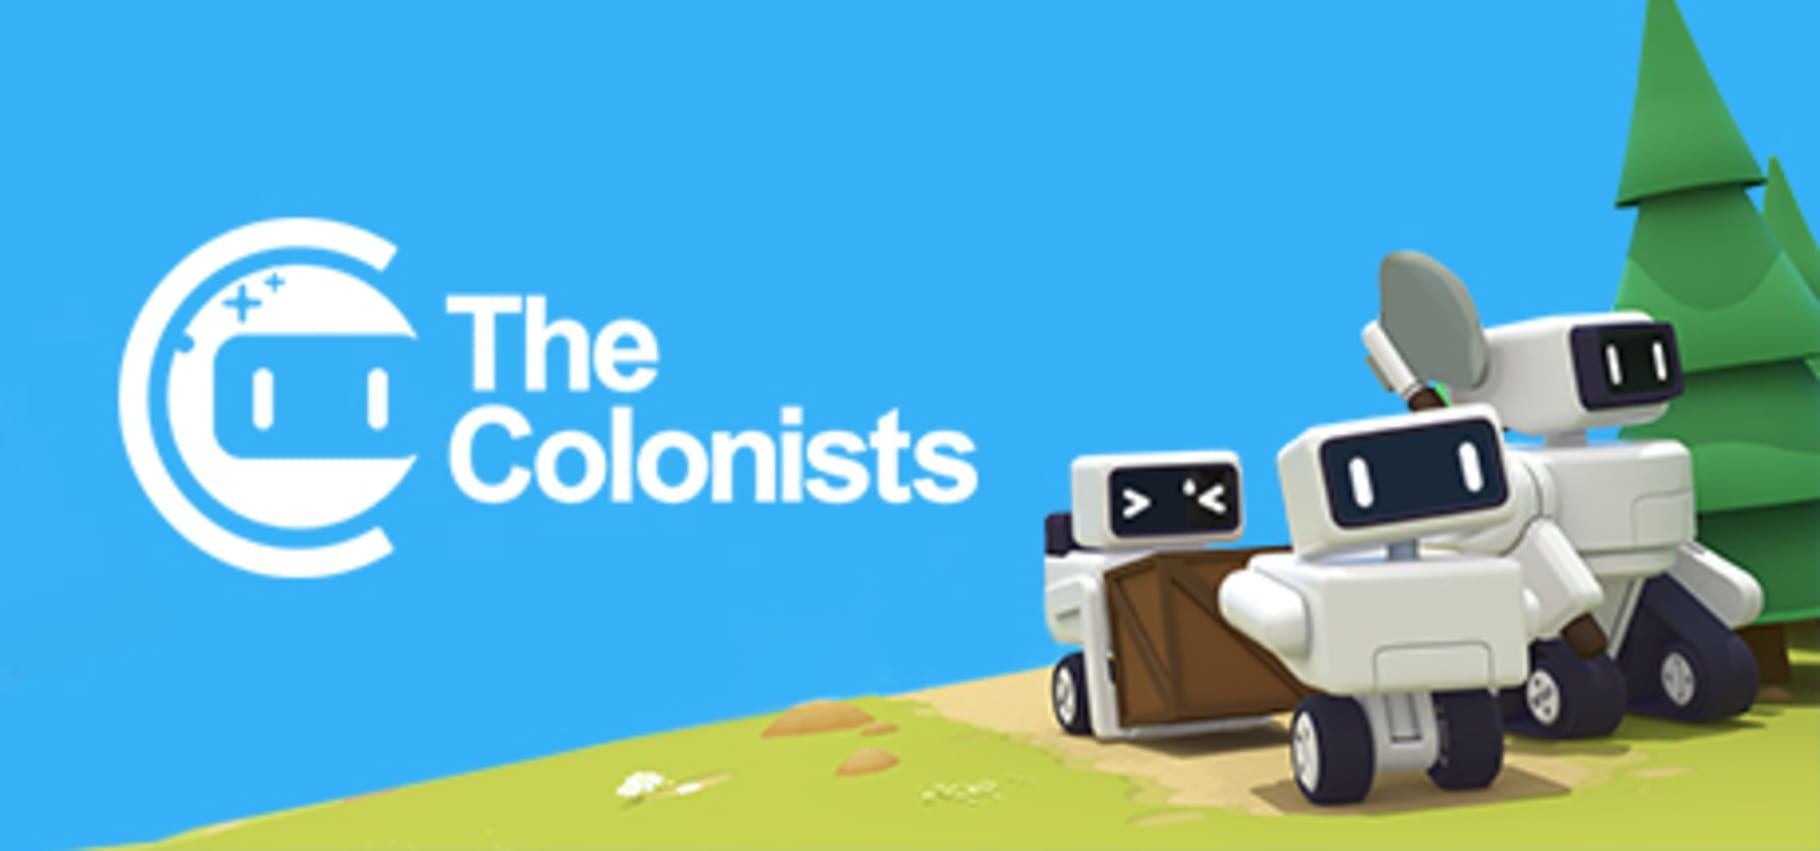 buy The Colonists cd key for all platform